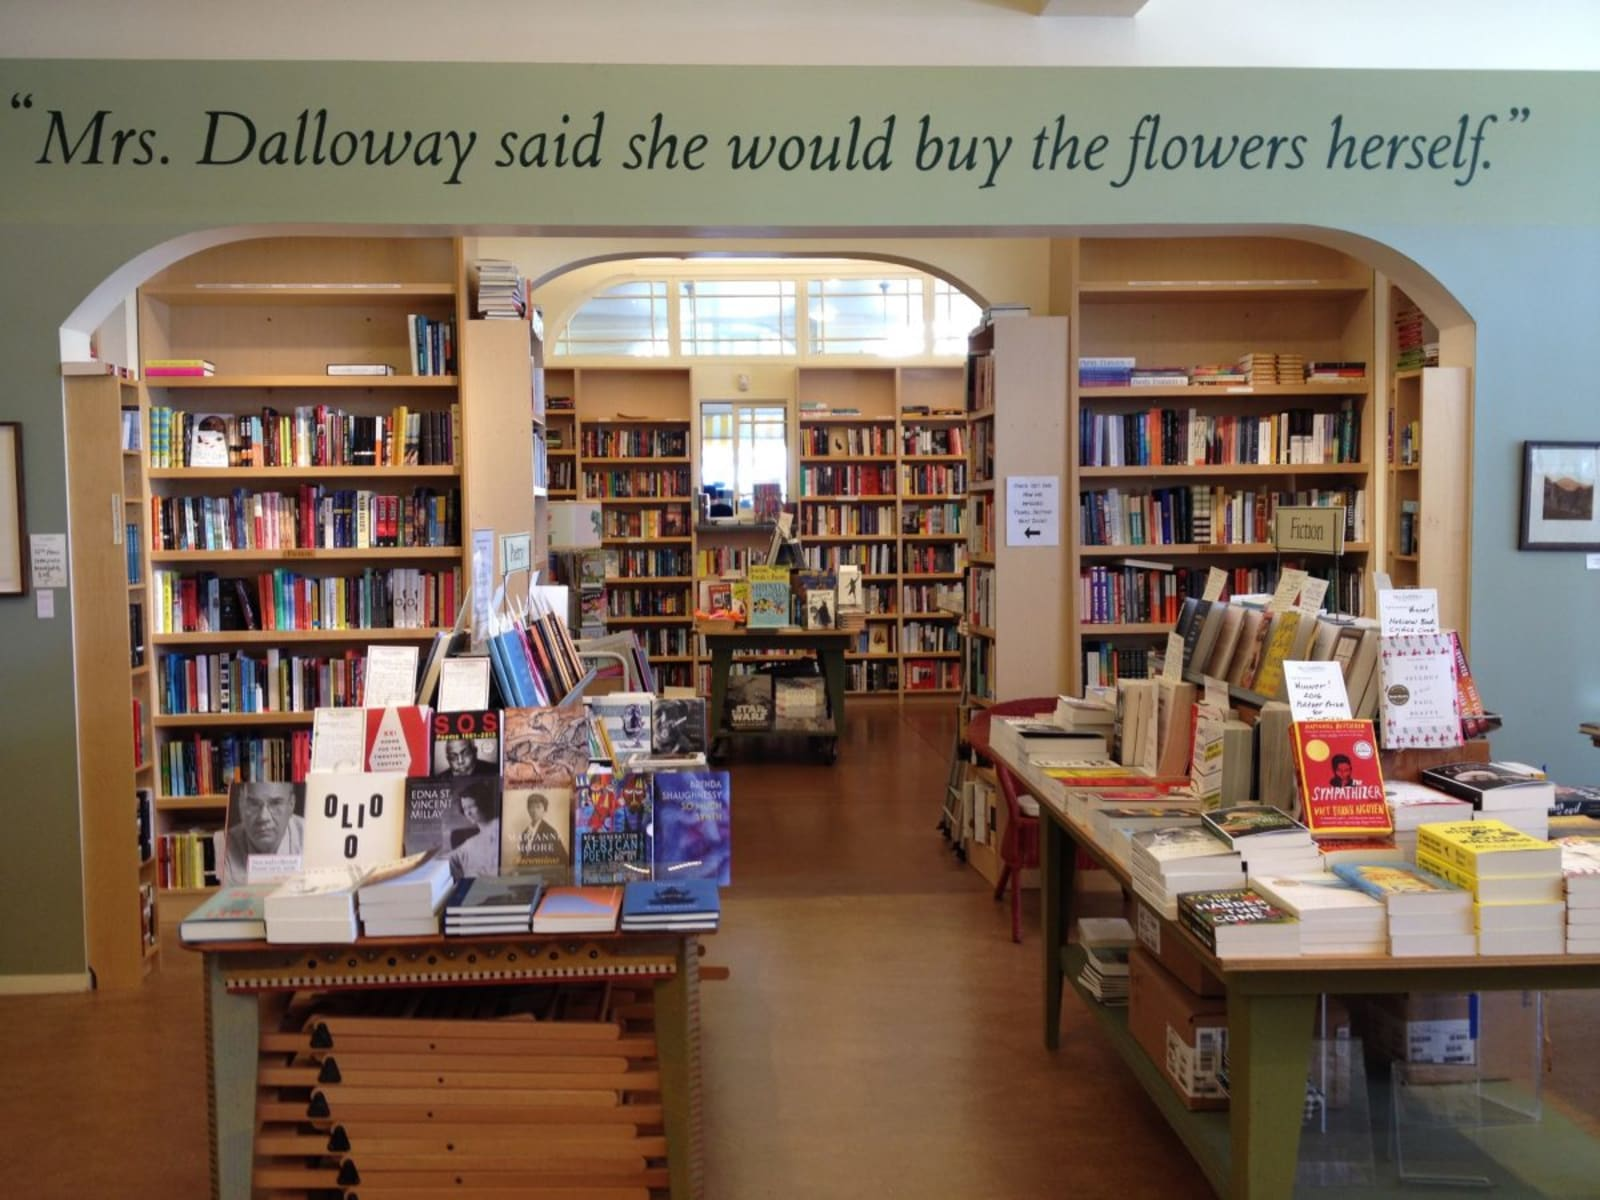 Gifts at Mrs. Dalloway's